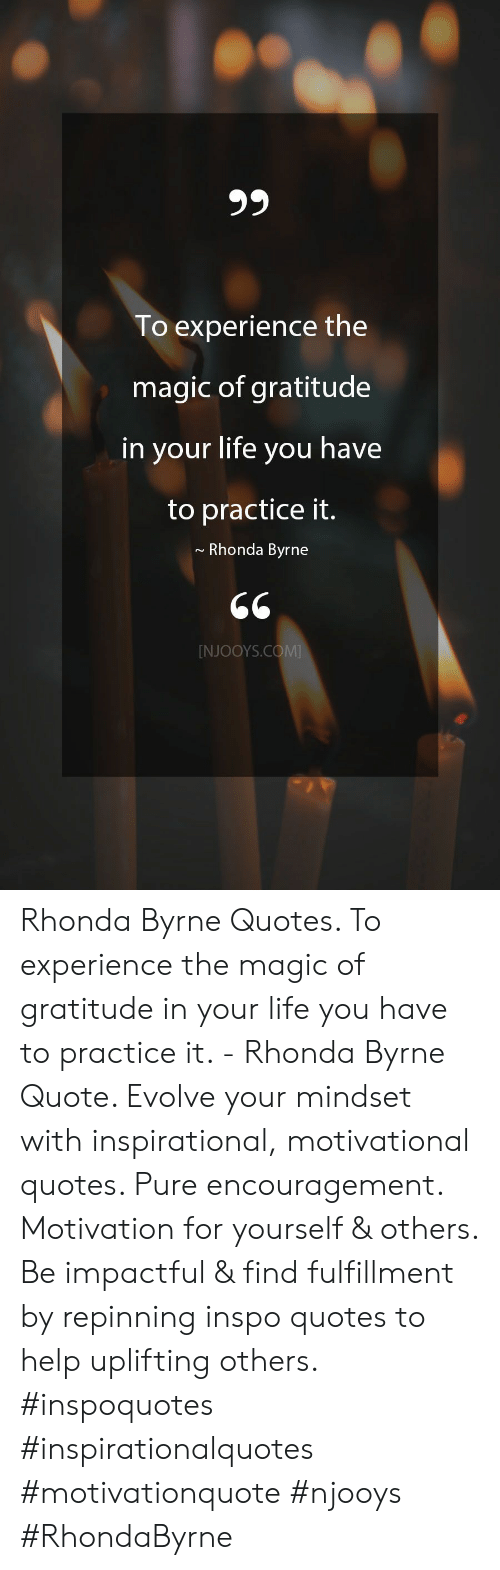 Evolve: 99  To experience the  magic of gratitude  in your life you have  to practice it.  Rhonda Byrne  [NJOOYS.COM Rhonda Byrne Quotes. To experience the magic of gratitude in your life you have to practice it. - Rhonda Byrne Quote. Evolve your mindset with inspirational, motivational quotes. Pure encouragement. Motivation for yourself & others. Be impactful & find fulfillment by repinning inspo quotes to help uplifting others. #inspoquotes #inspirationalquotes #motivationquote #njooys #RhondaByrne